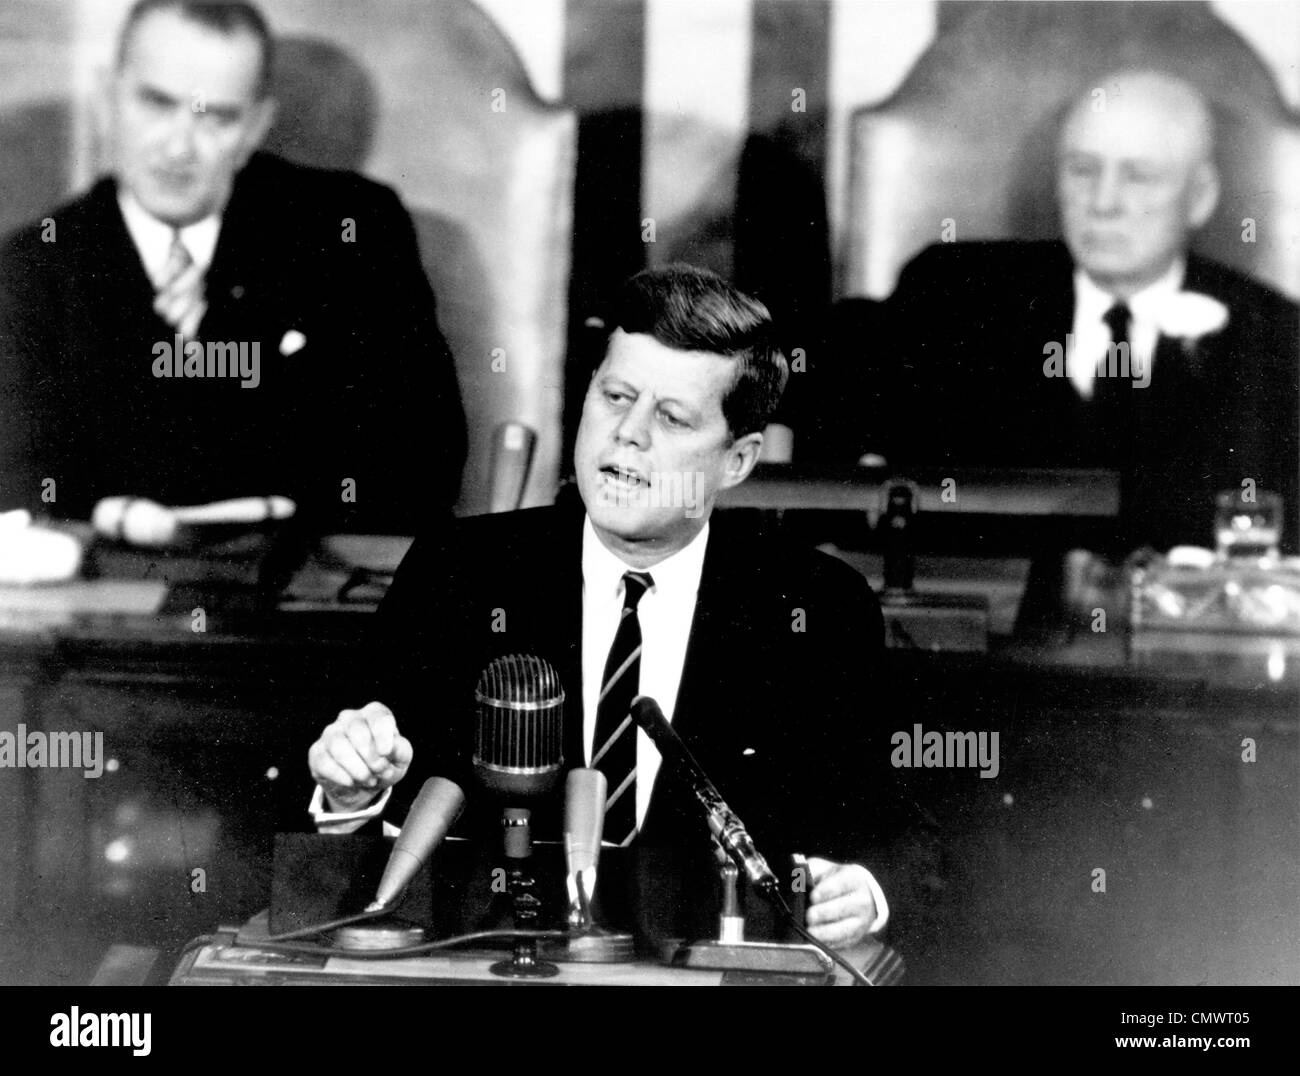 PRESIDENT JOHN F KENNEDY announces the Apollo space programme befor a joint session of Congress on 25 May 1961 - Stock Image